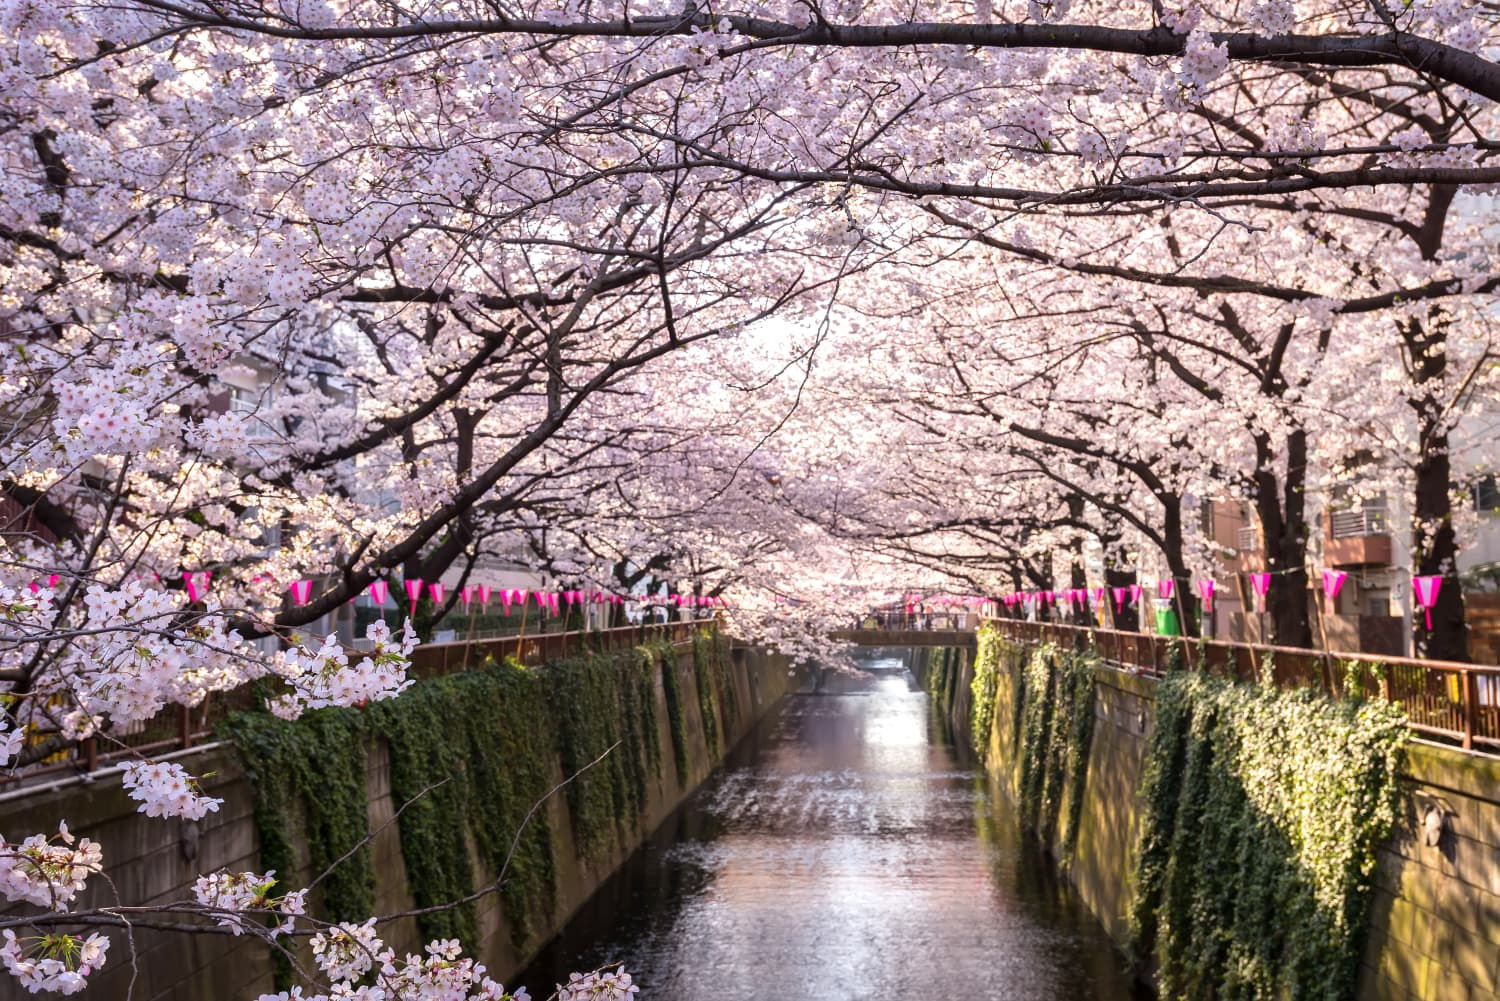 From Tokyo to Washington D.C., This Virtual Tour Lets You Visit Famous Cherry Blossom Sites Around the World